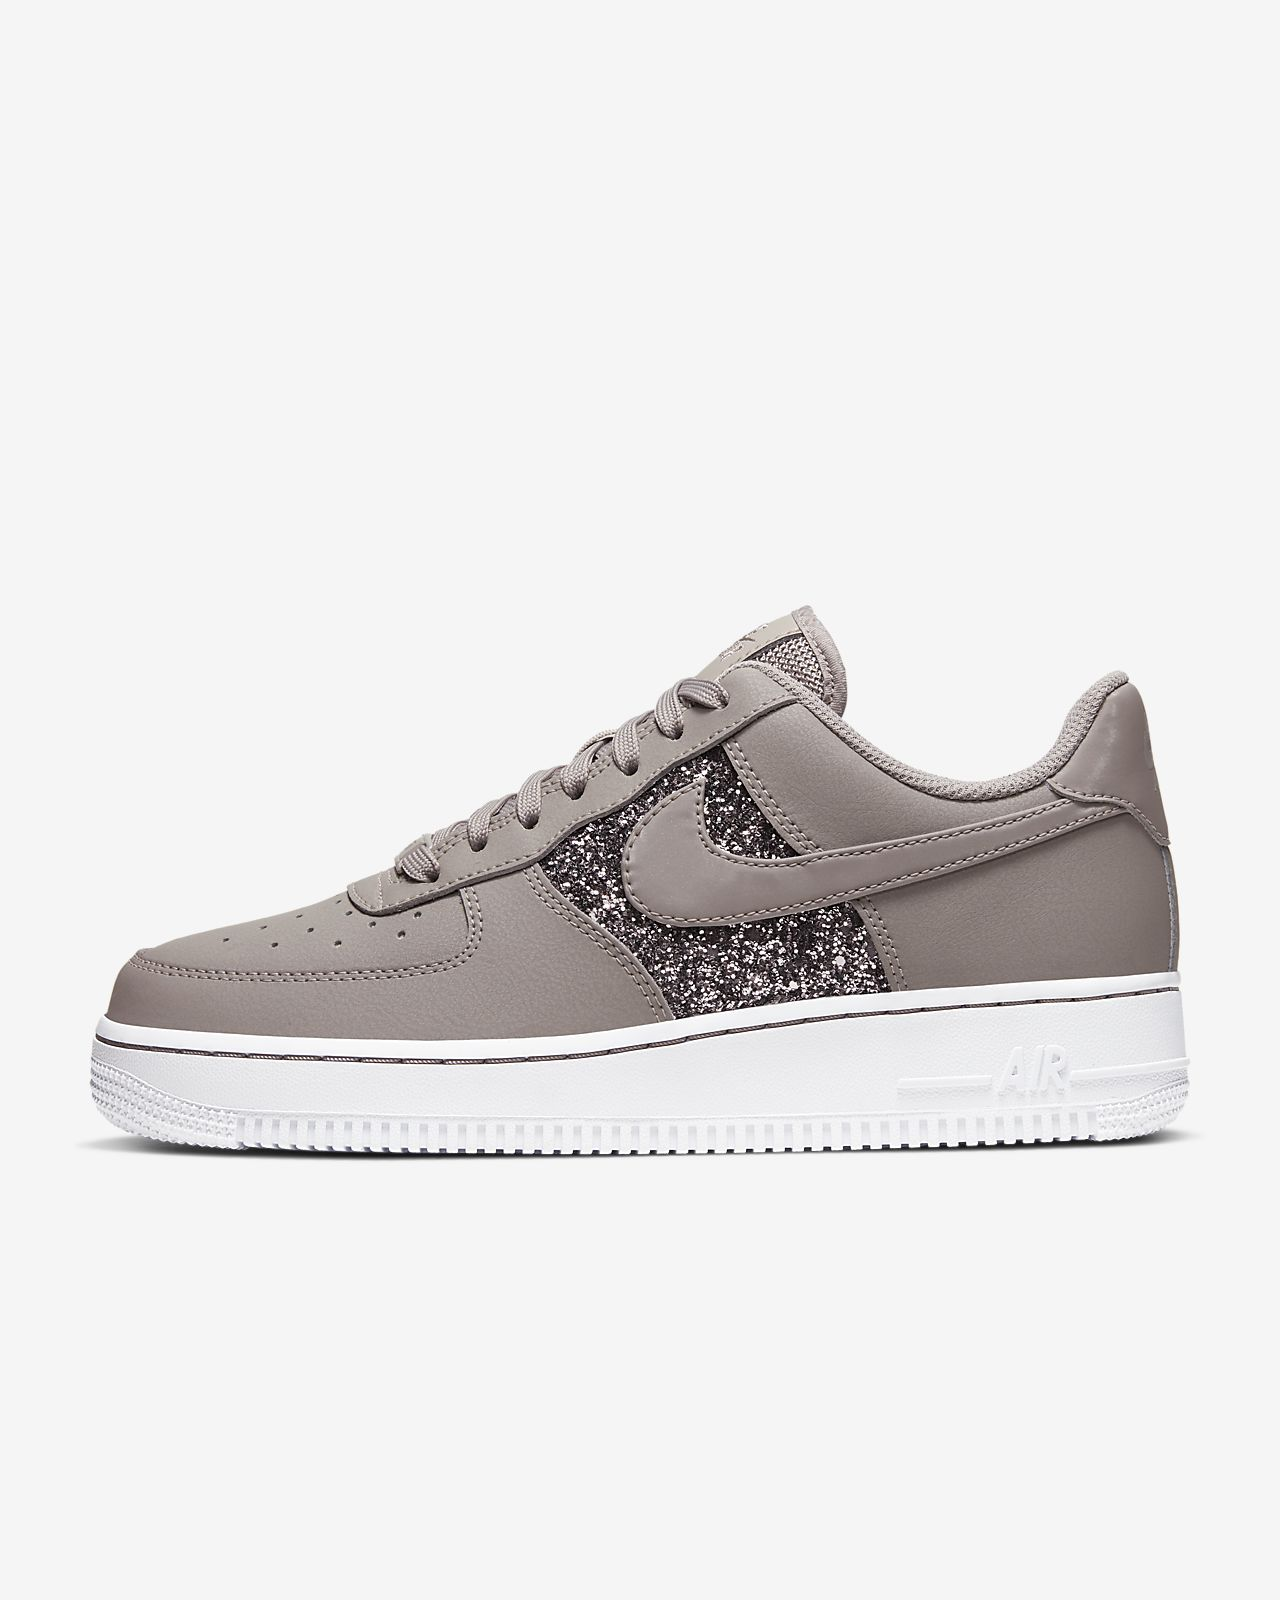 Glittersko Nike Air Force 1 Low för kvinnor